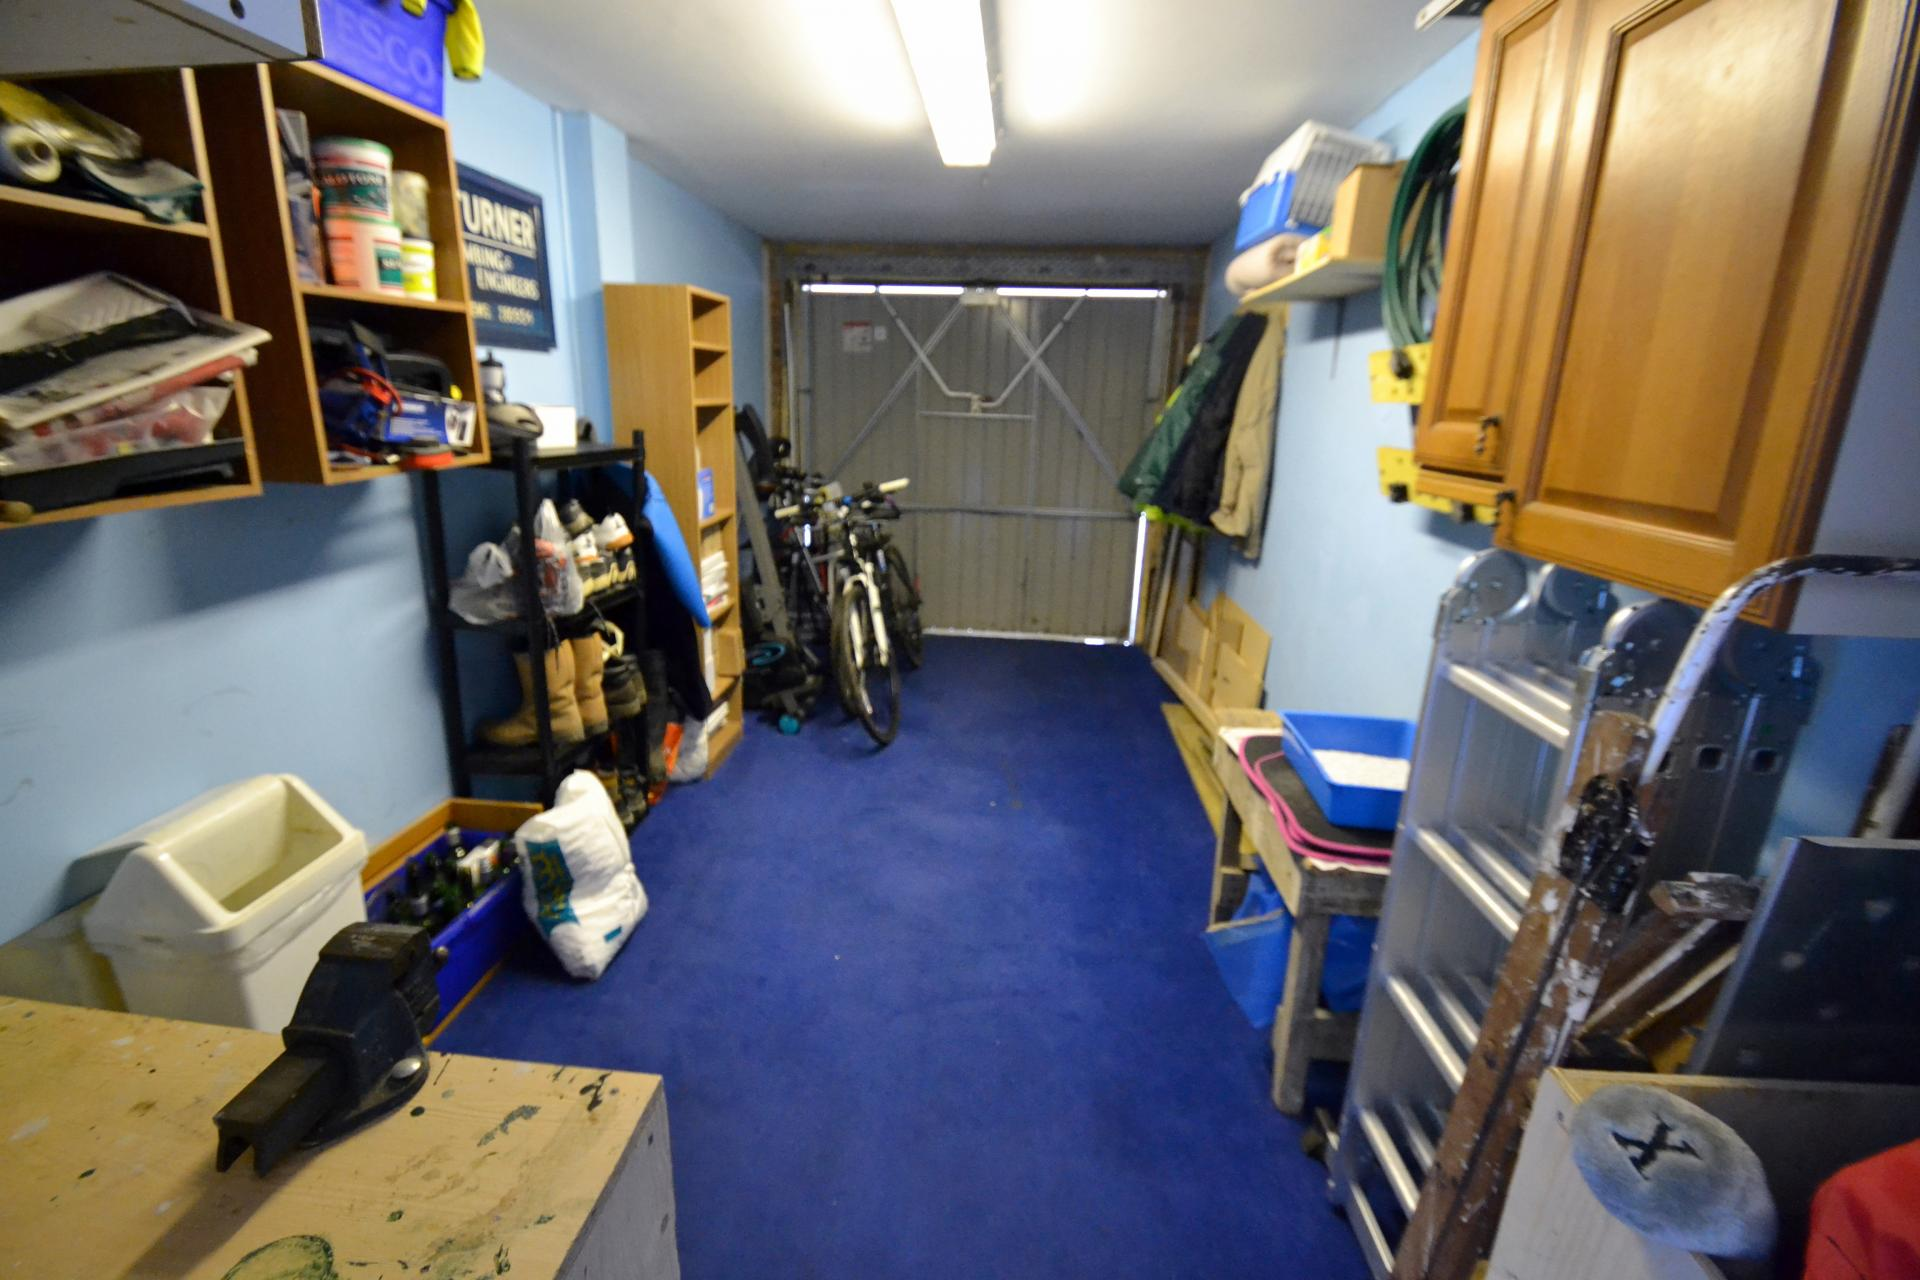 Bedroom detached house for sale in sudbury